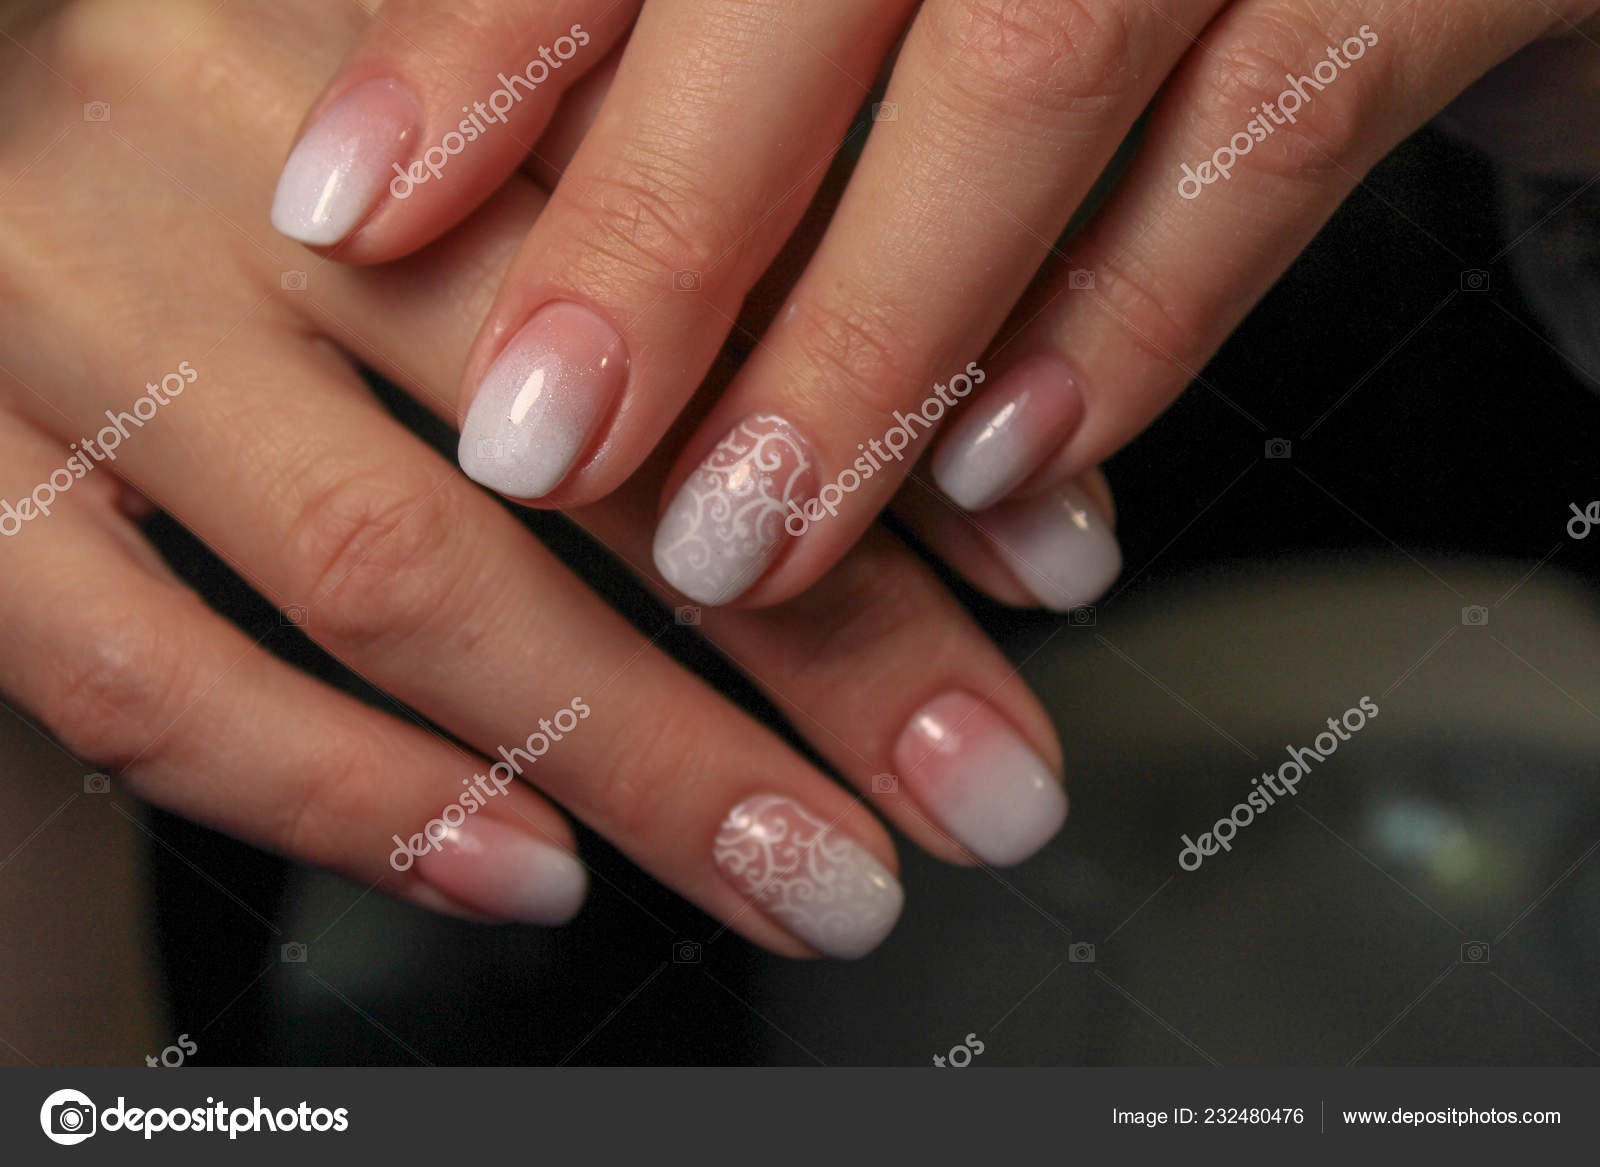 Hands Beautiful Manicure Natural Nails Gel Polish Stock Photo